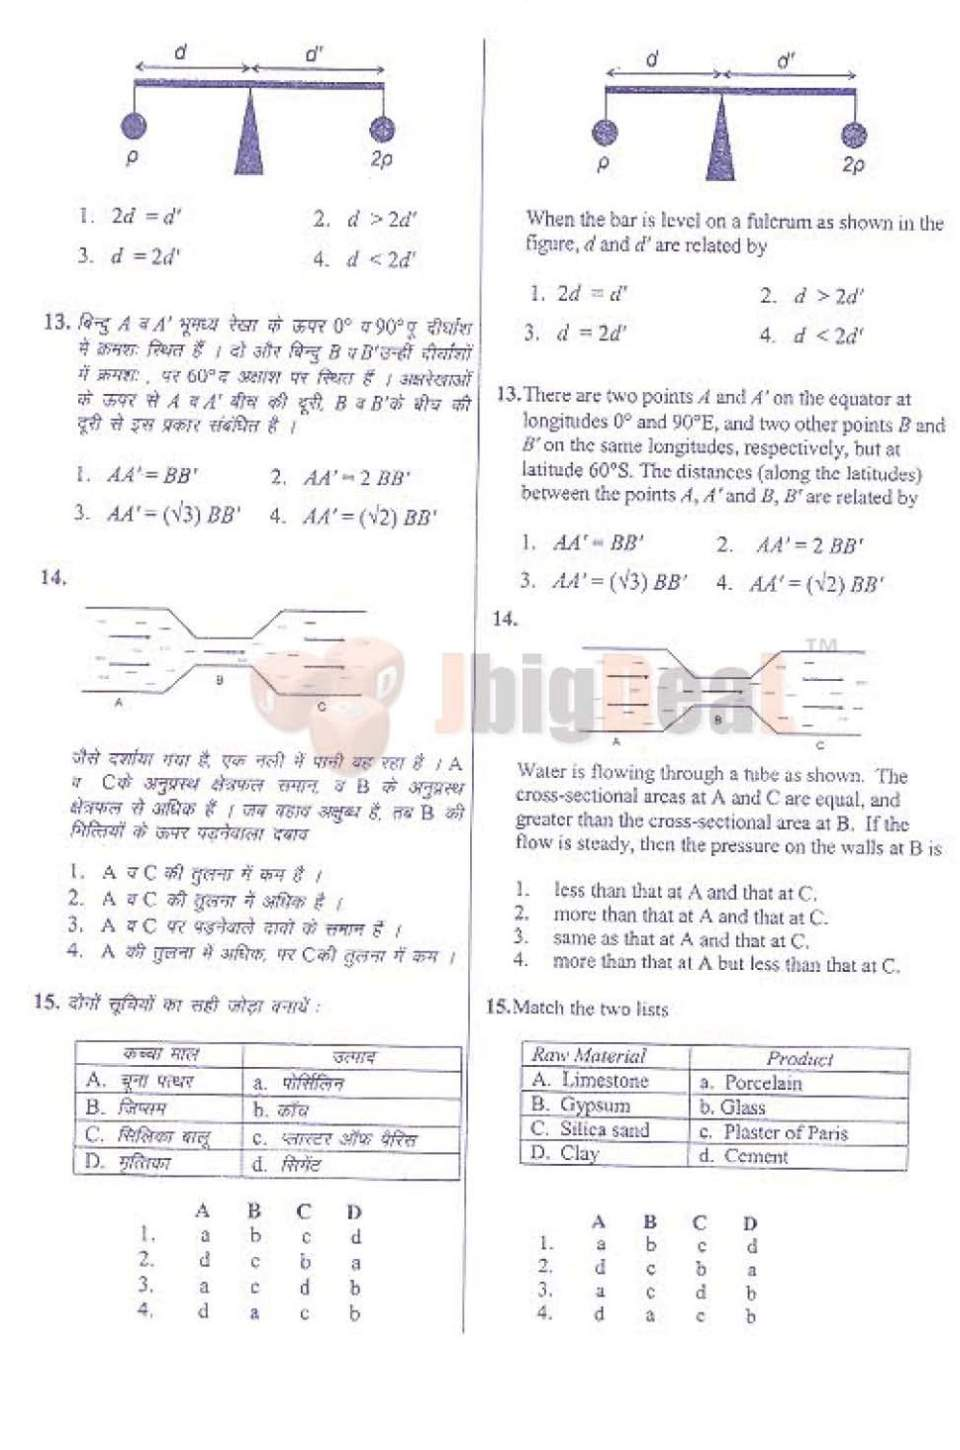 CSIR UGC NET previous year question papers of Physical